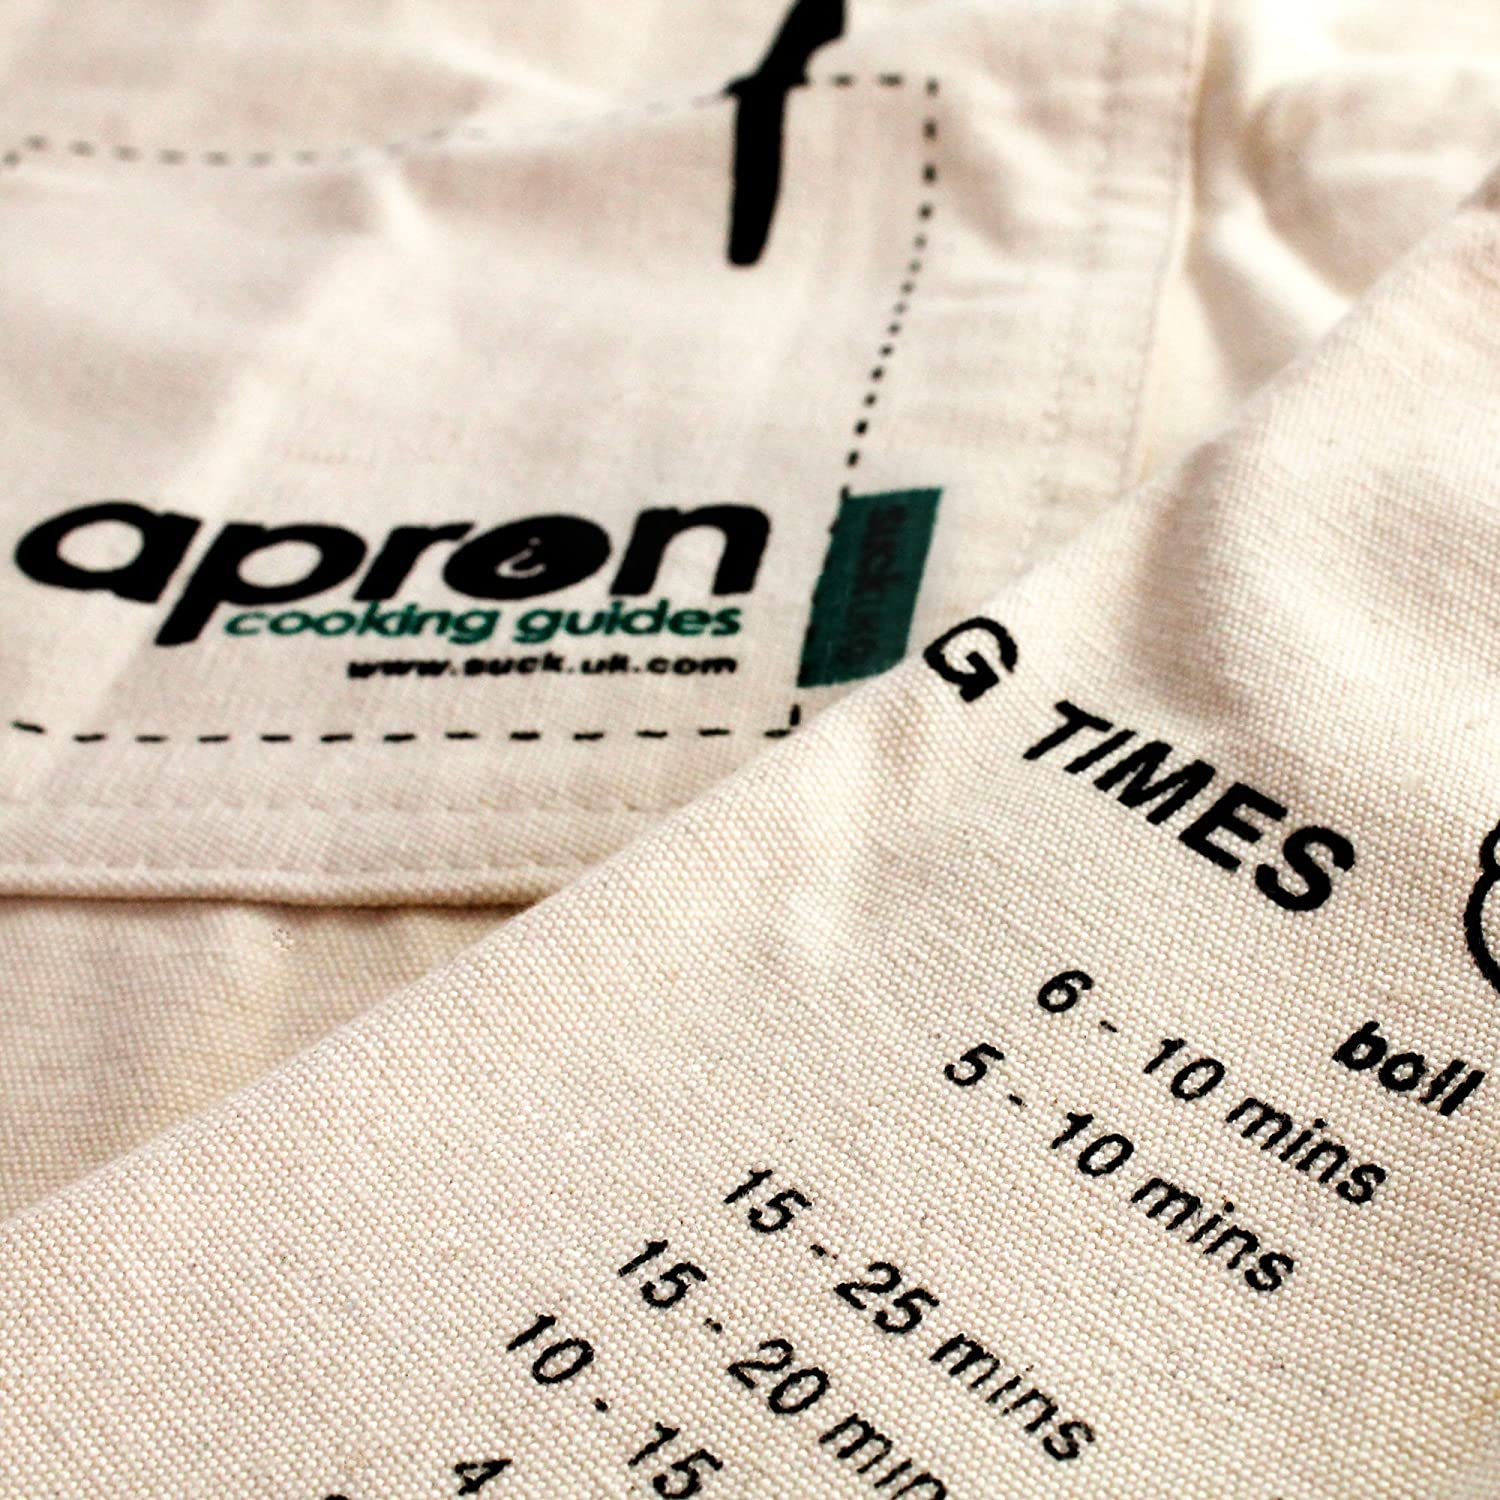 Apron with Cooking Guide by SUCK UK